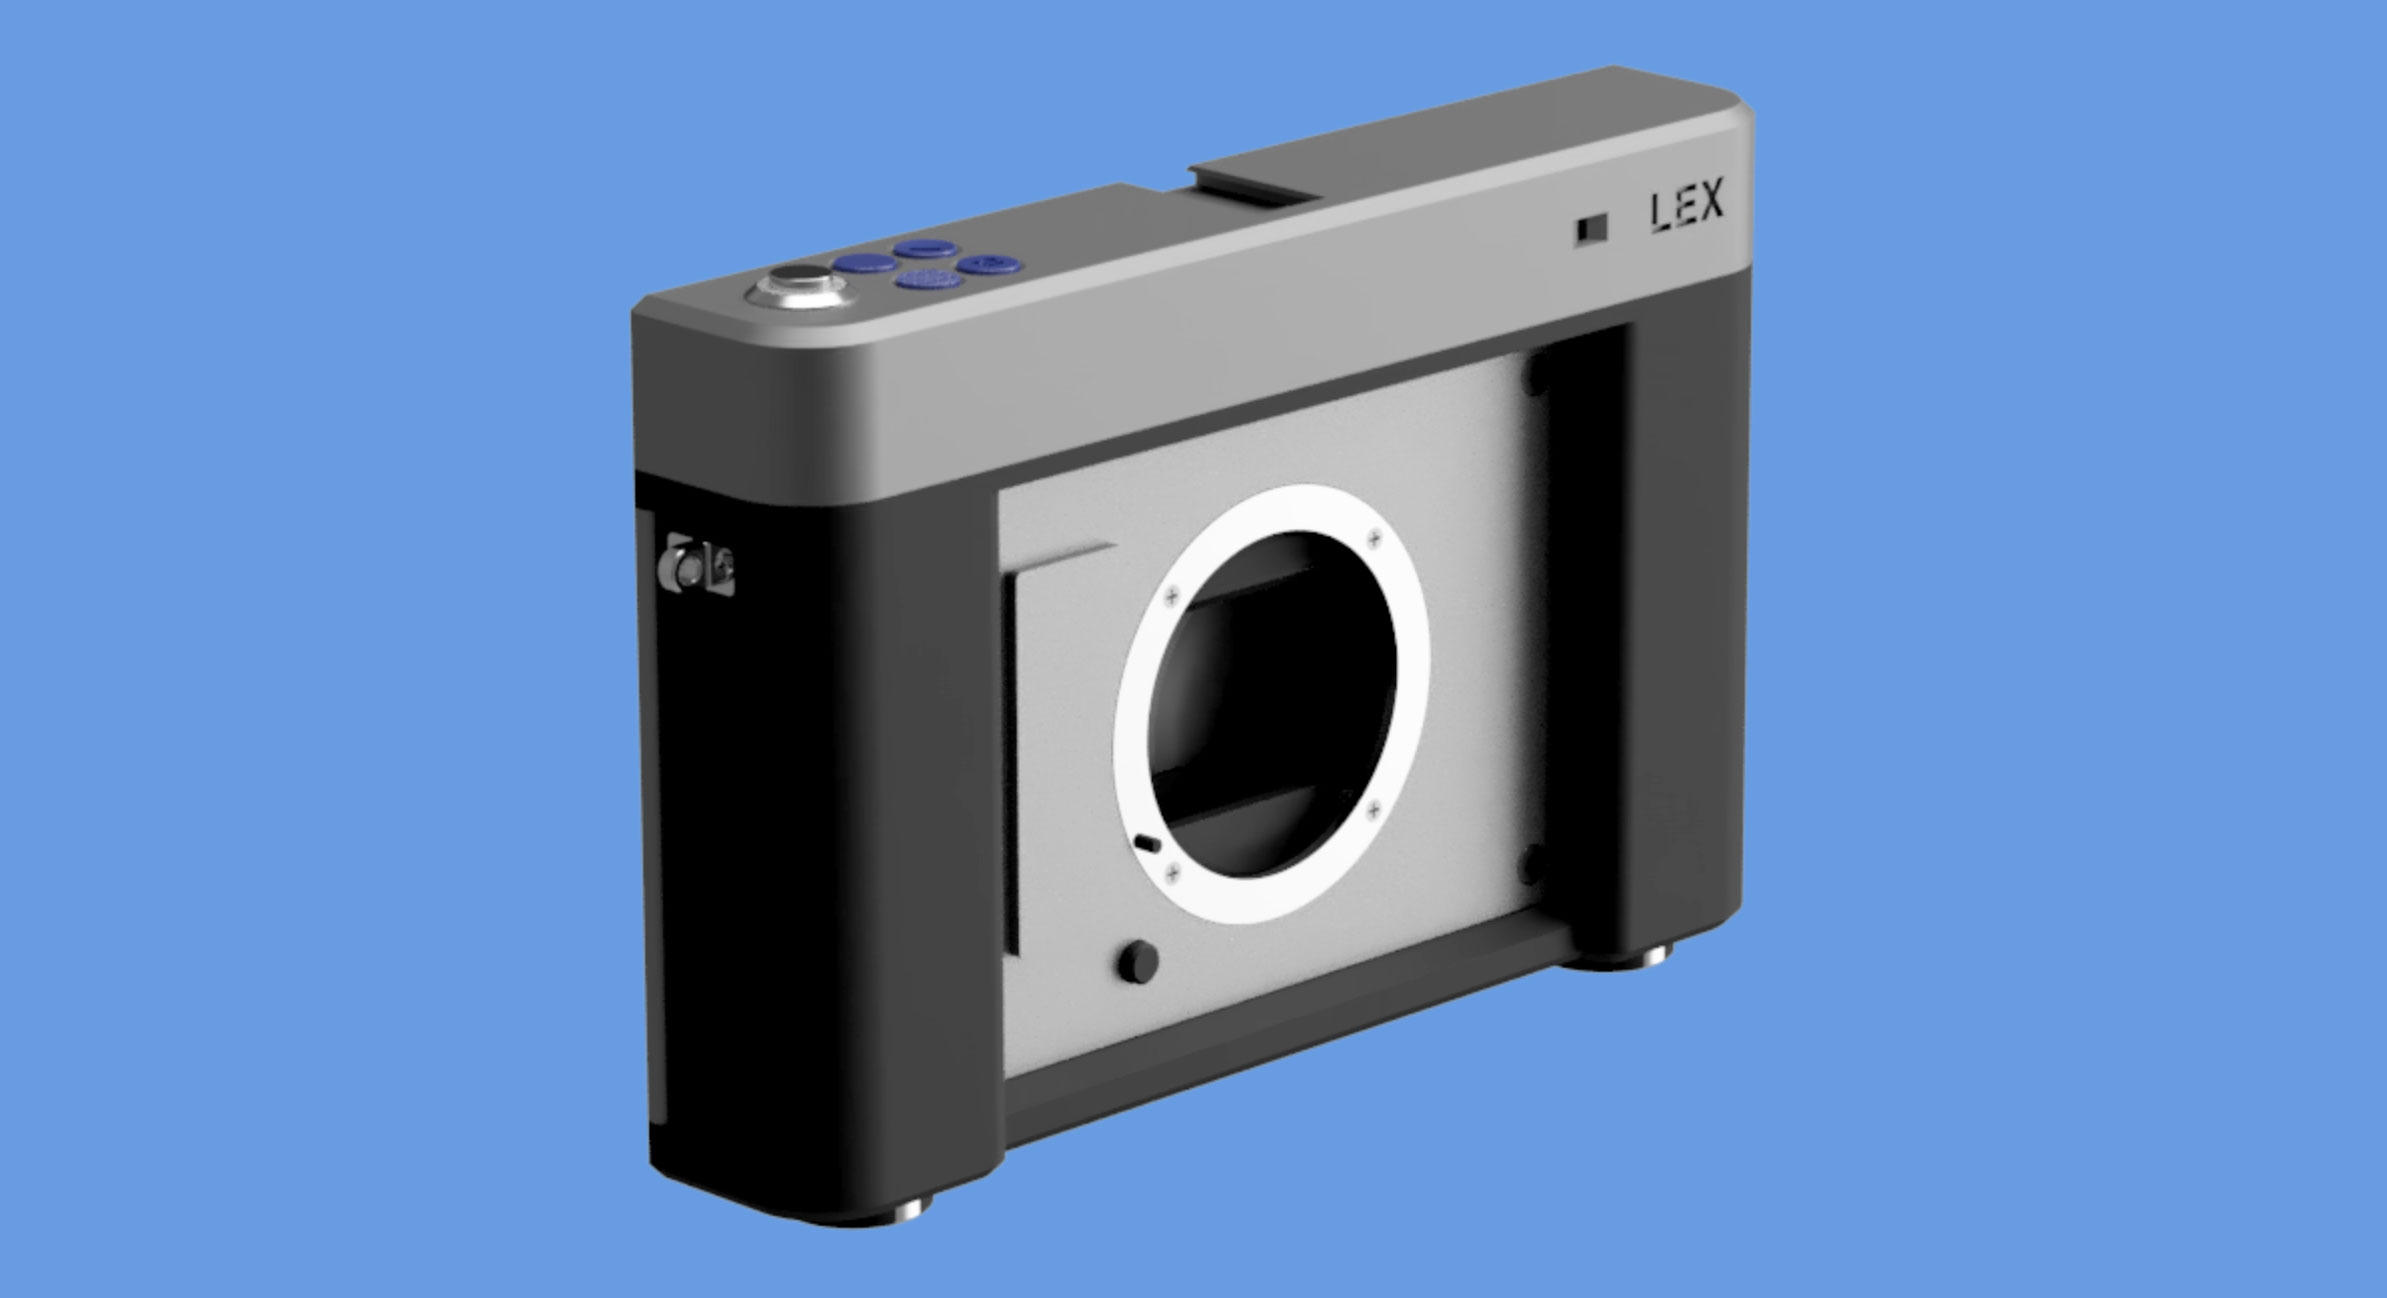 The Lex, shown here in a digital mockup, is a 3D-printed camera body that accepts Sony E-mount lenses.